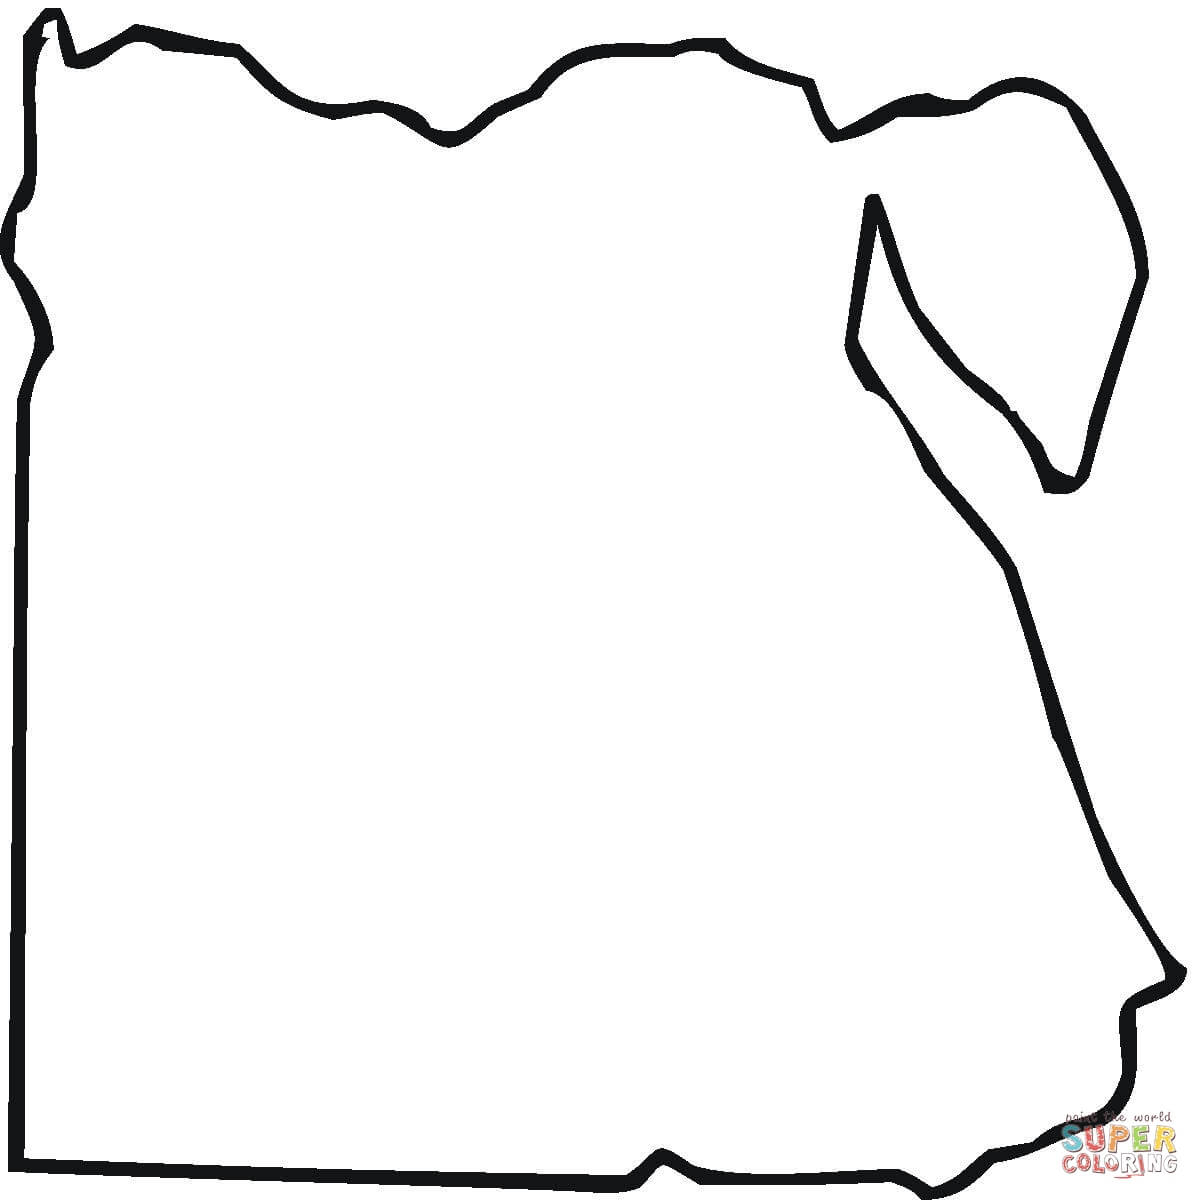 Blank United States Map 1850 Sketch Coloring Page